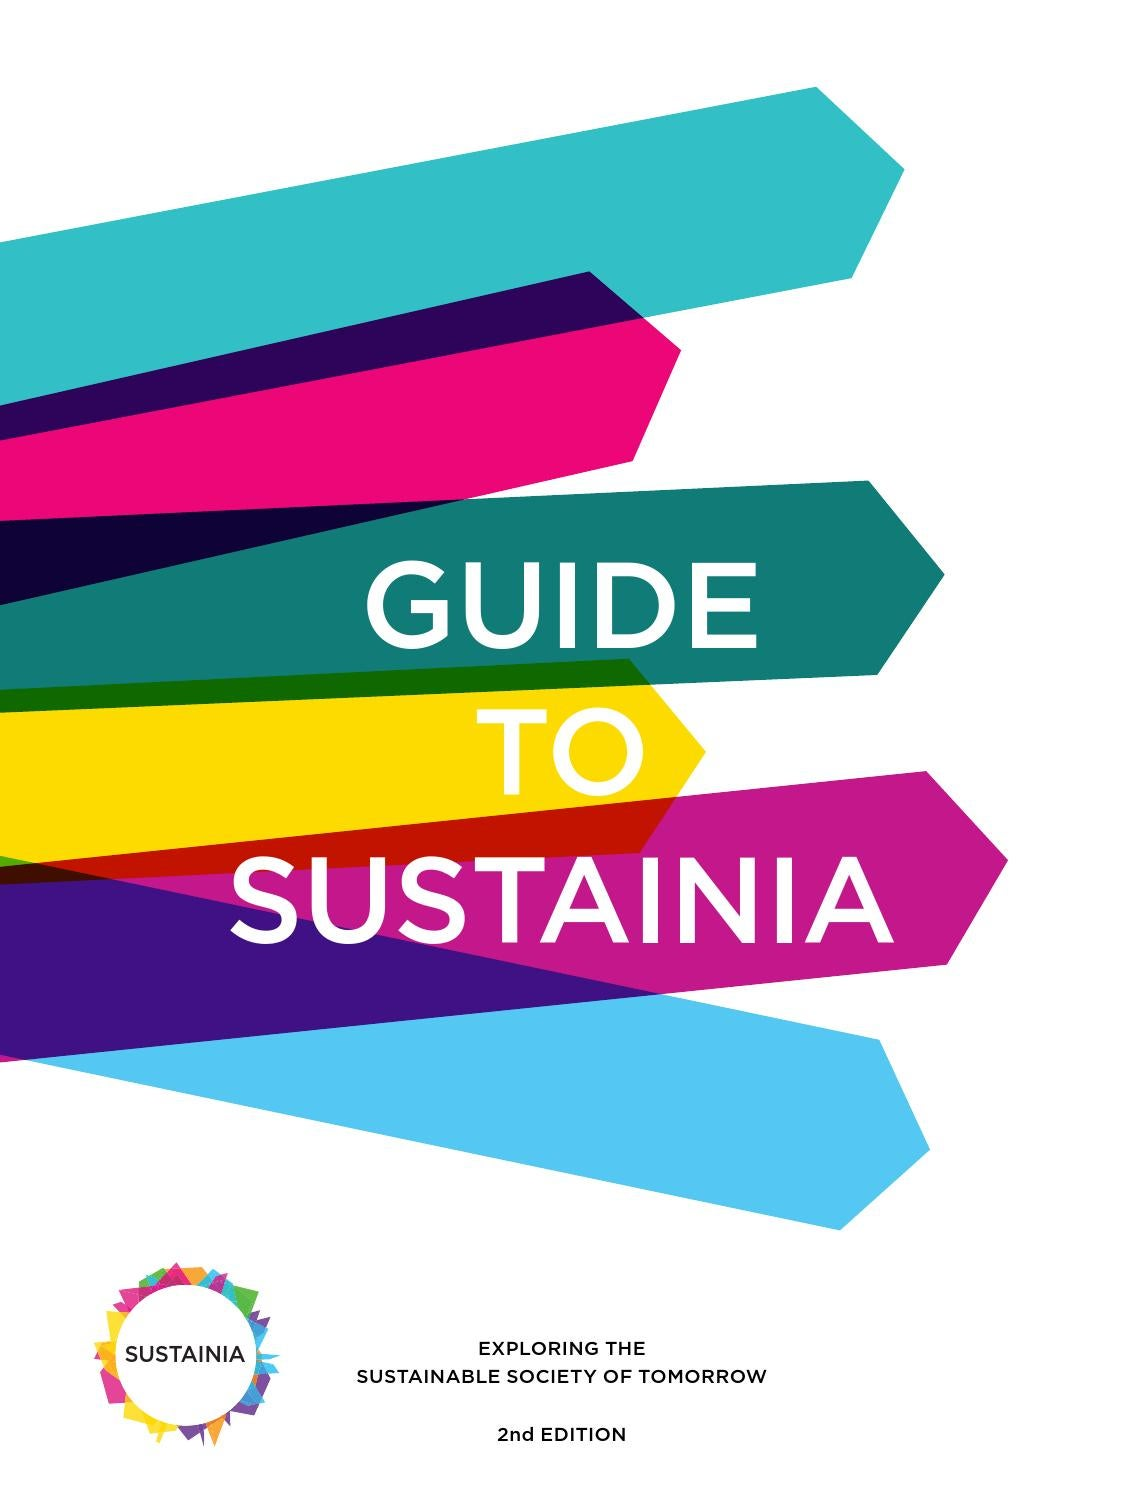 Guide to Sustainia 2nd edition by Sustainia - issuu